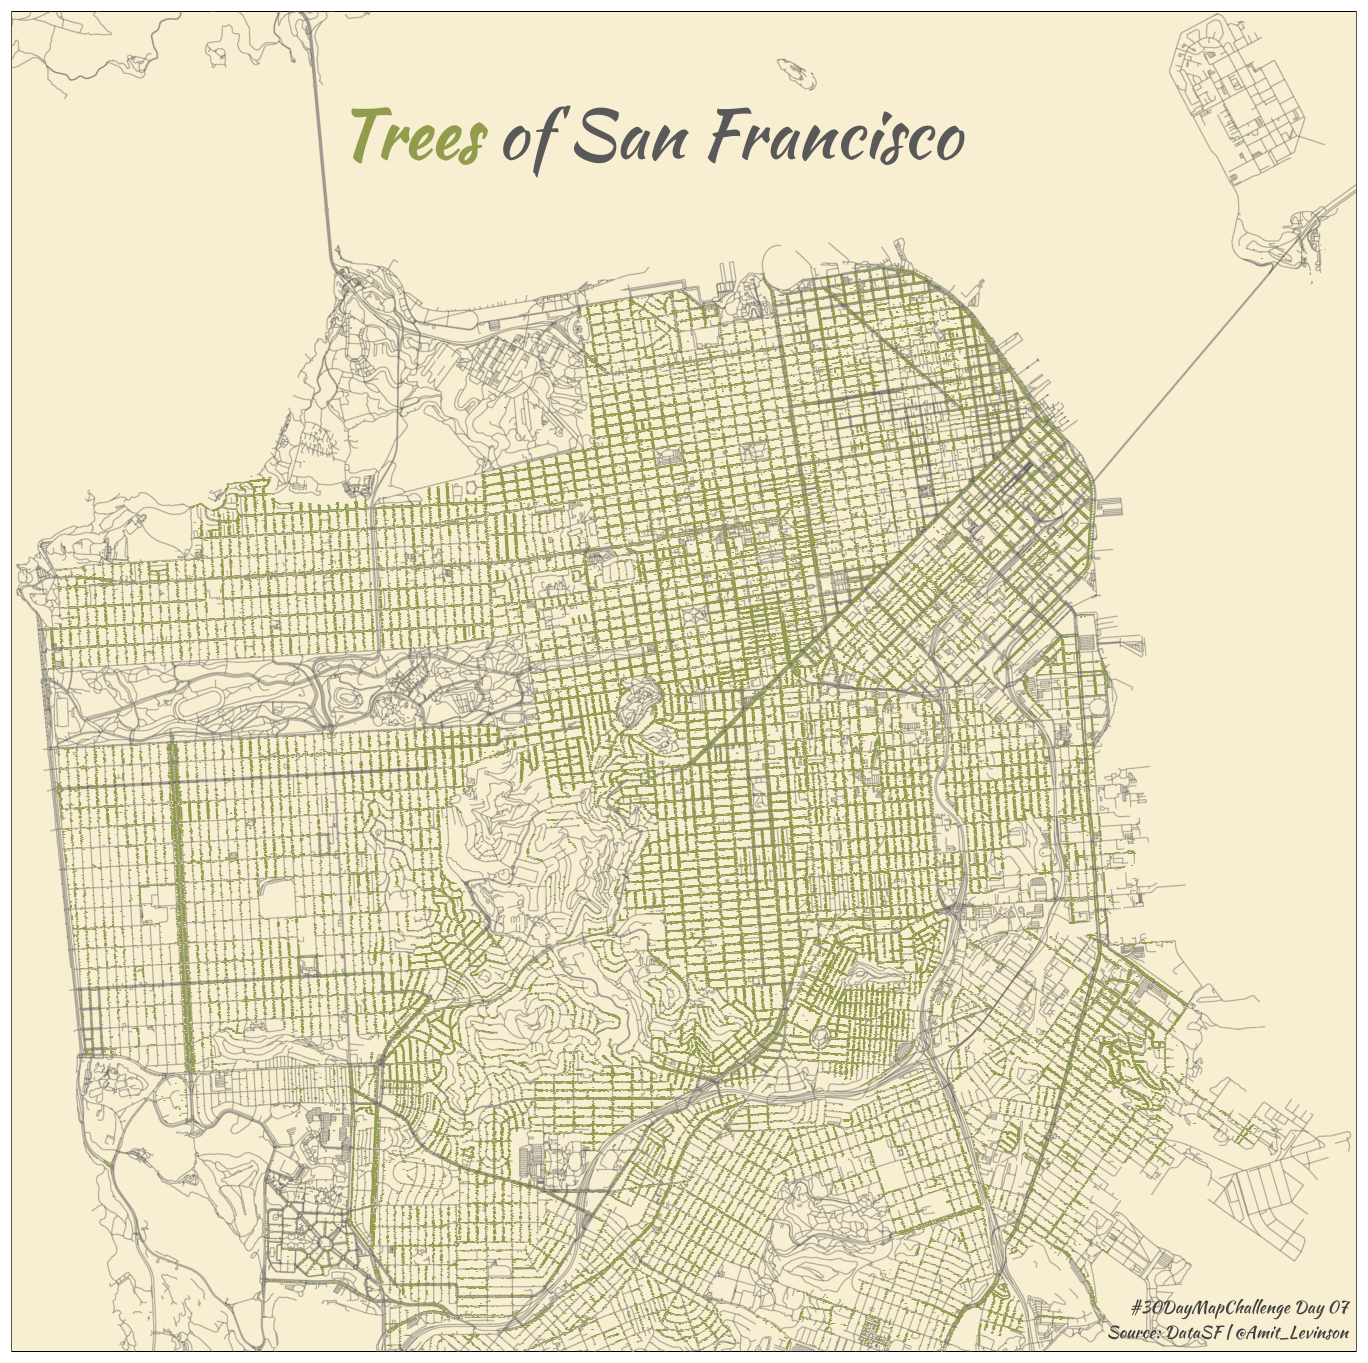 Mapping trees in San Francisco